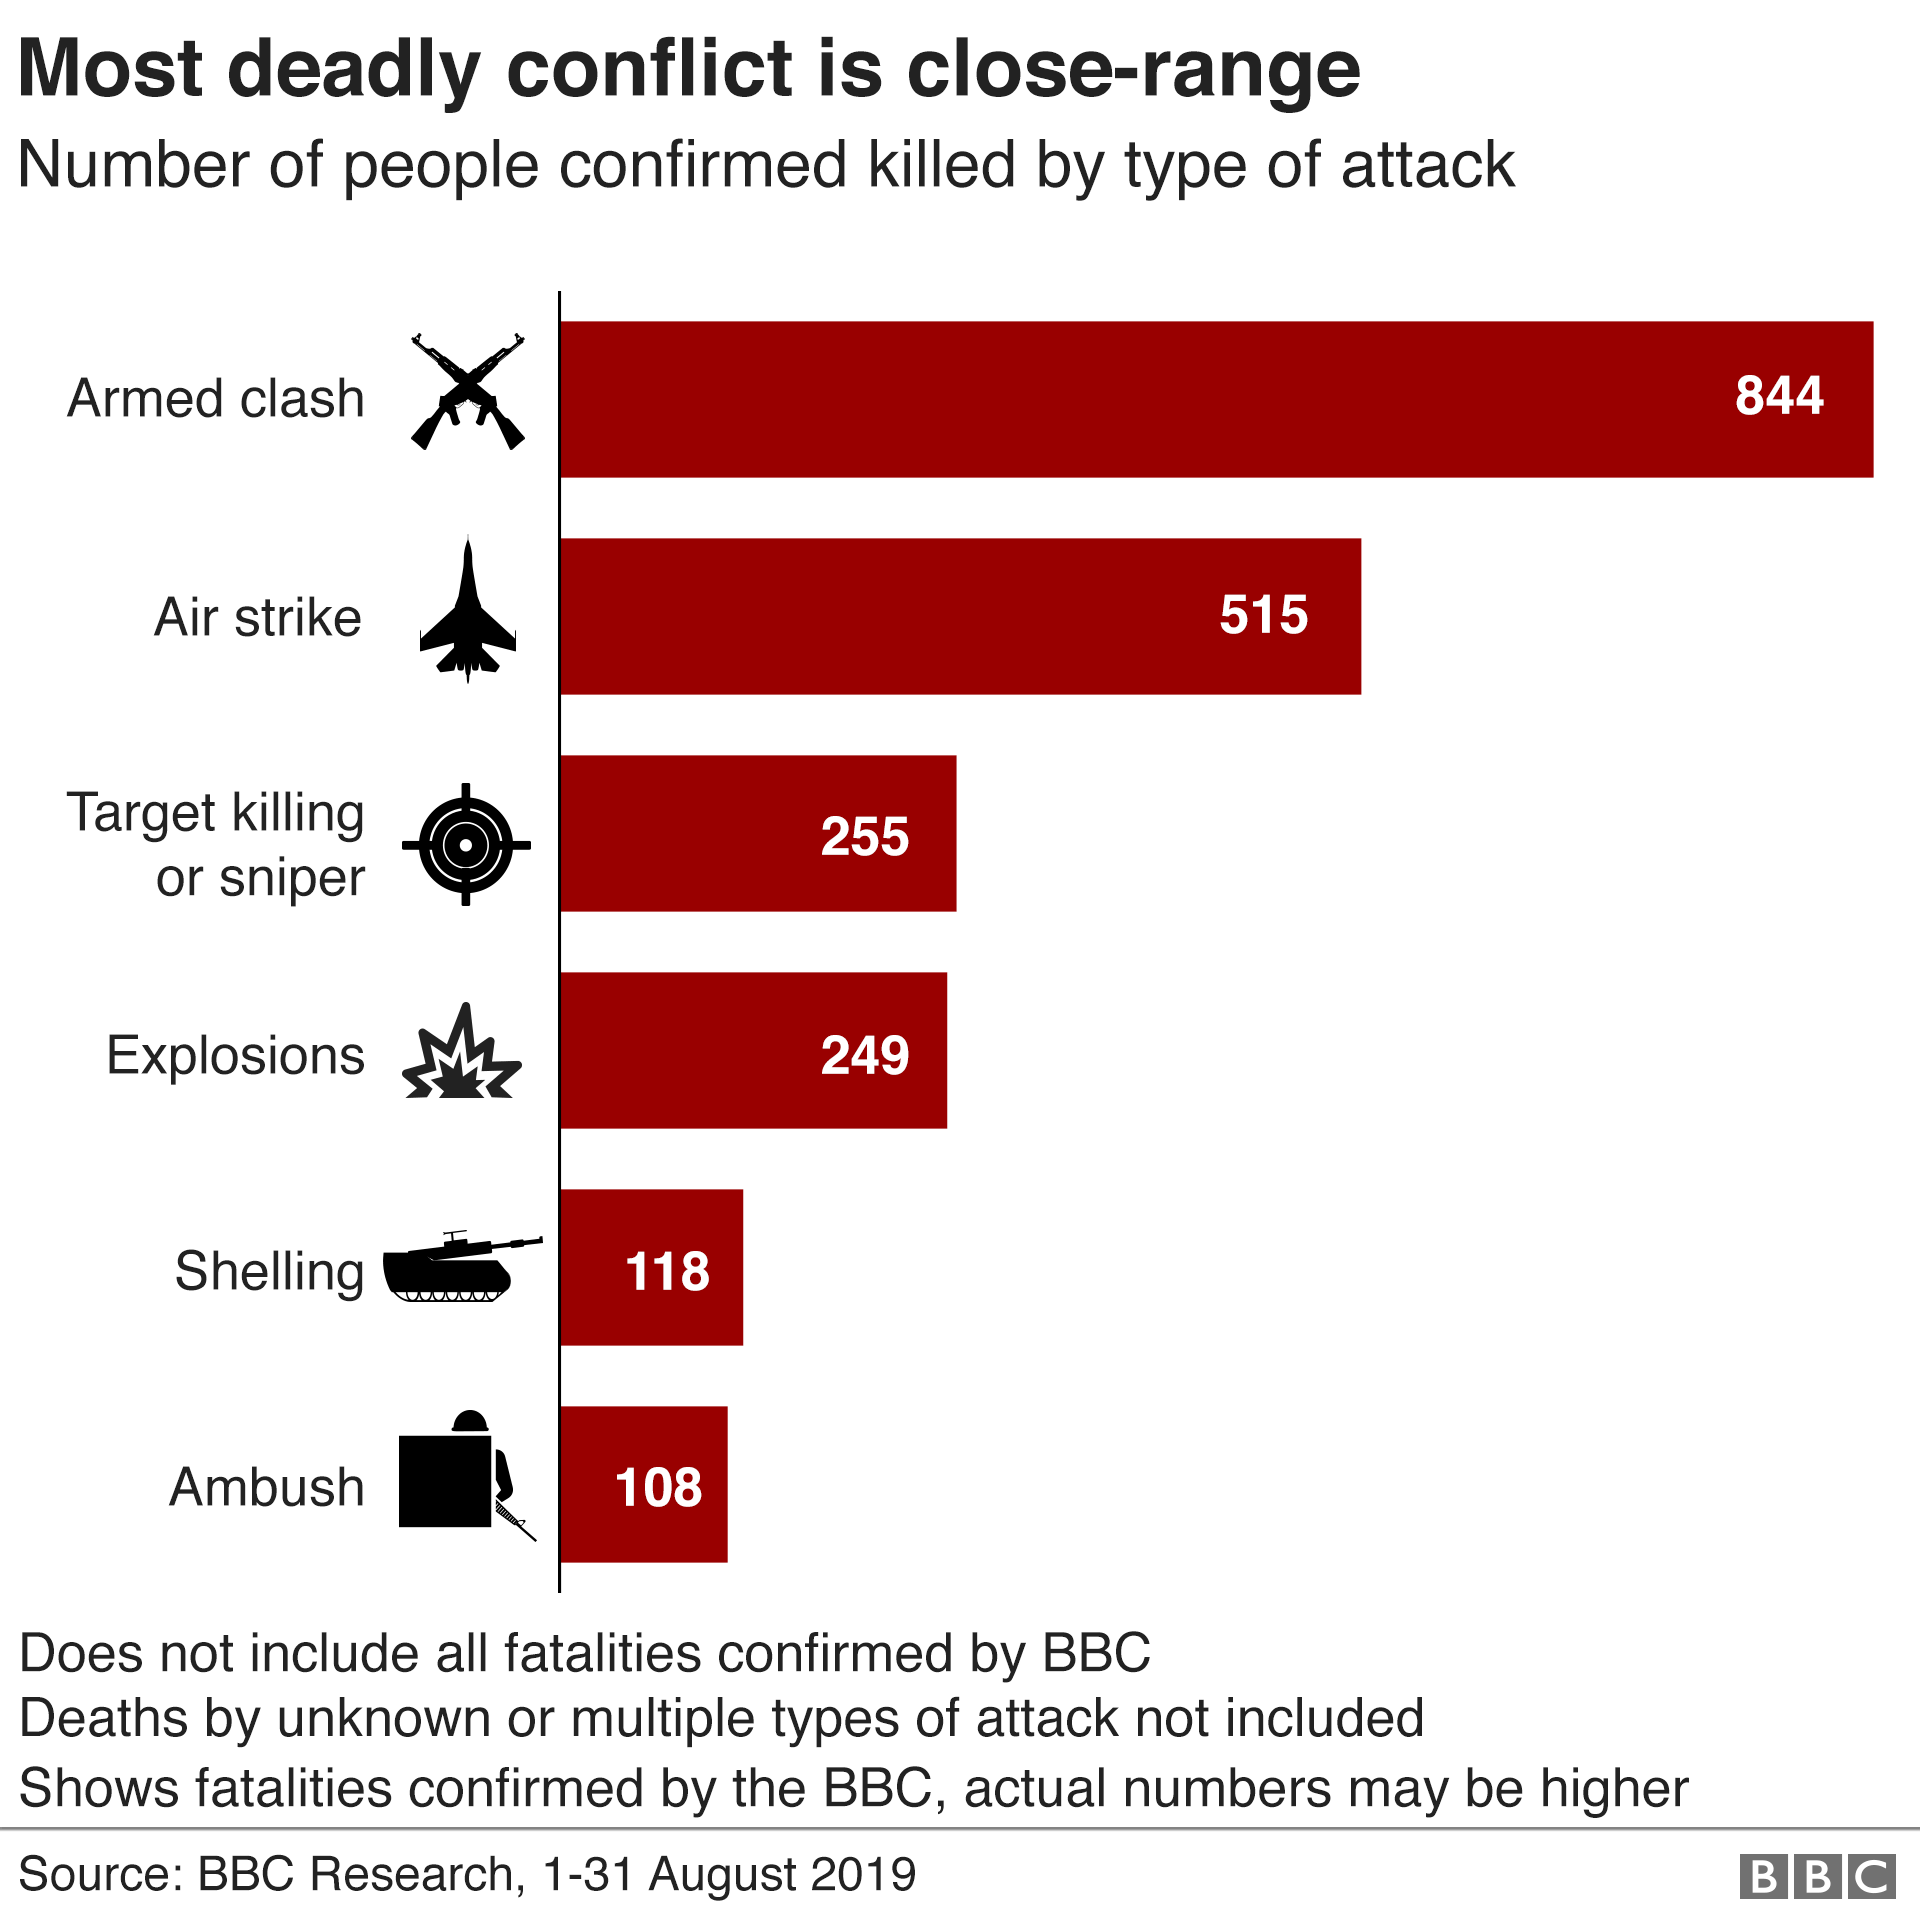 Graphic showing number of people killed by type of attack